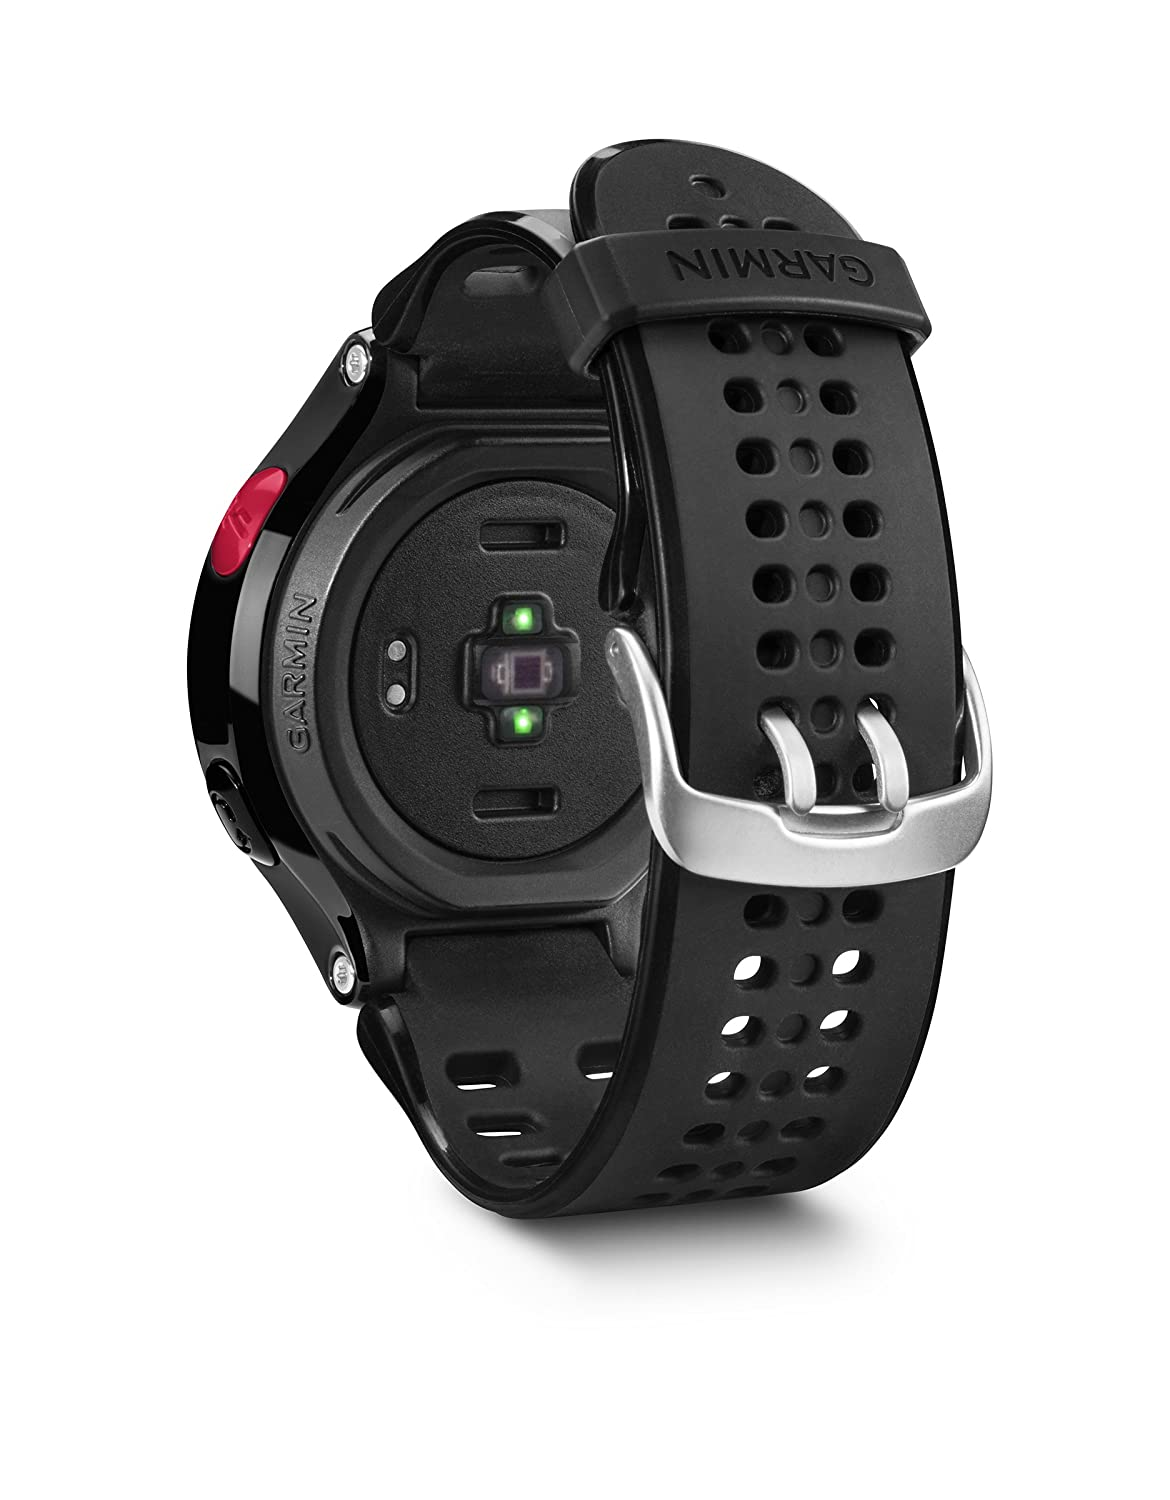 Watch with wrist hrm - Amazon Com Garmin Forerunner 225 Gps Running Watch With Wrist Based Heart Rate Cell Phones Accessories